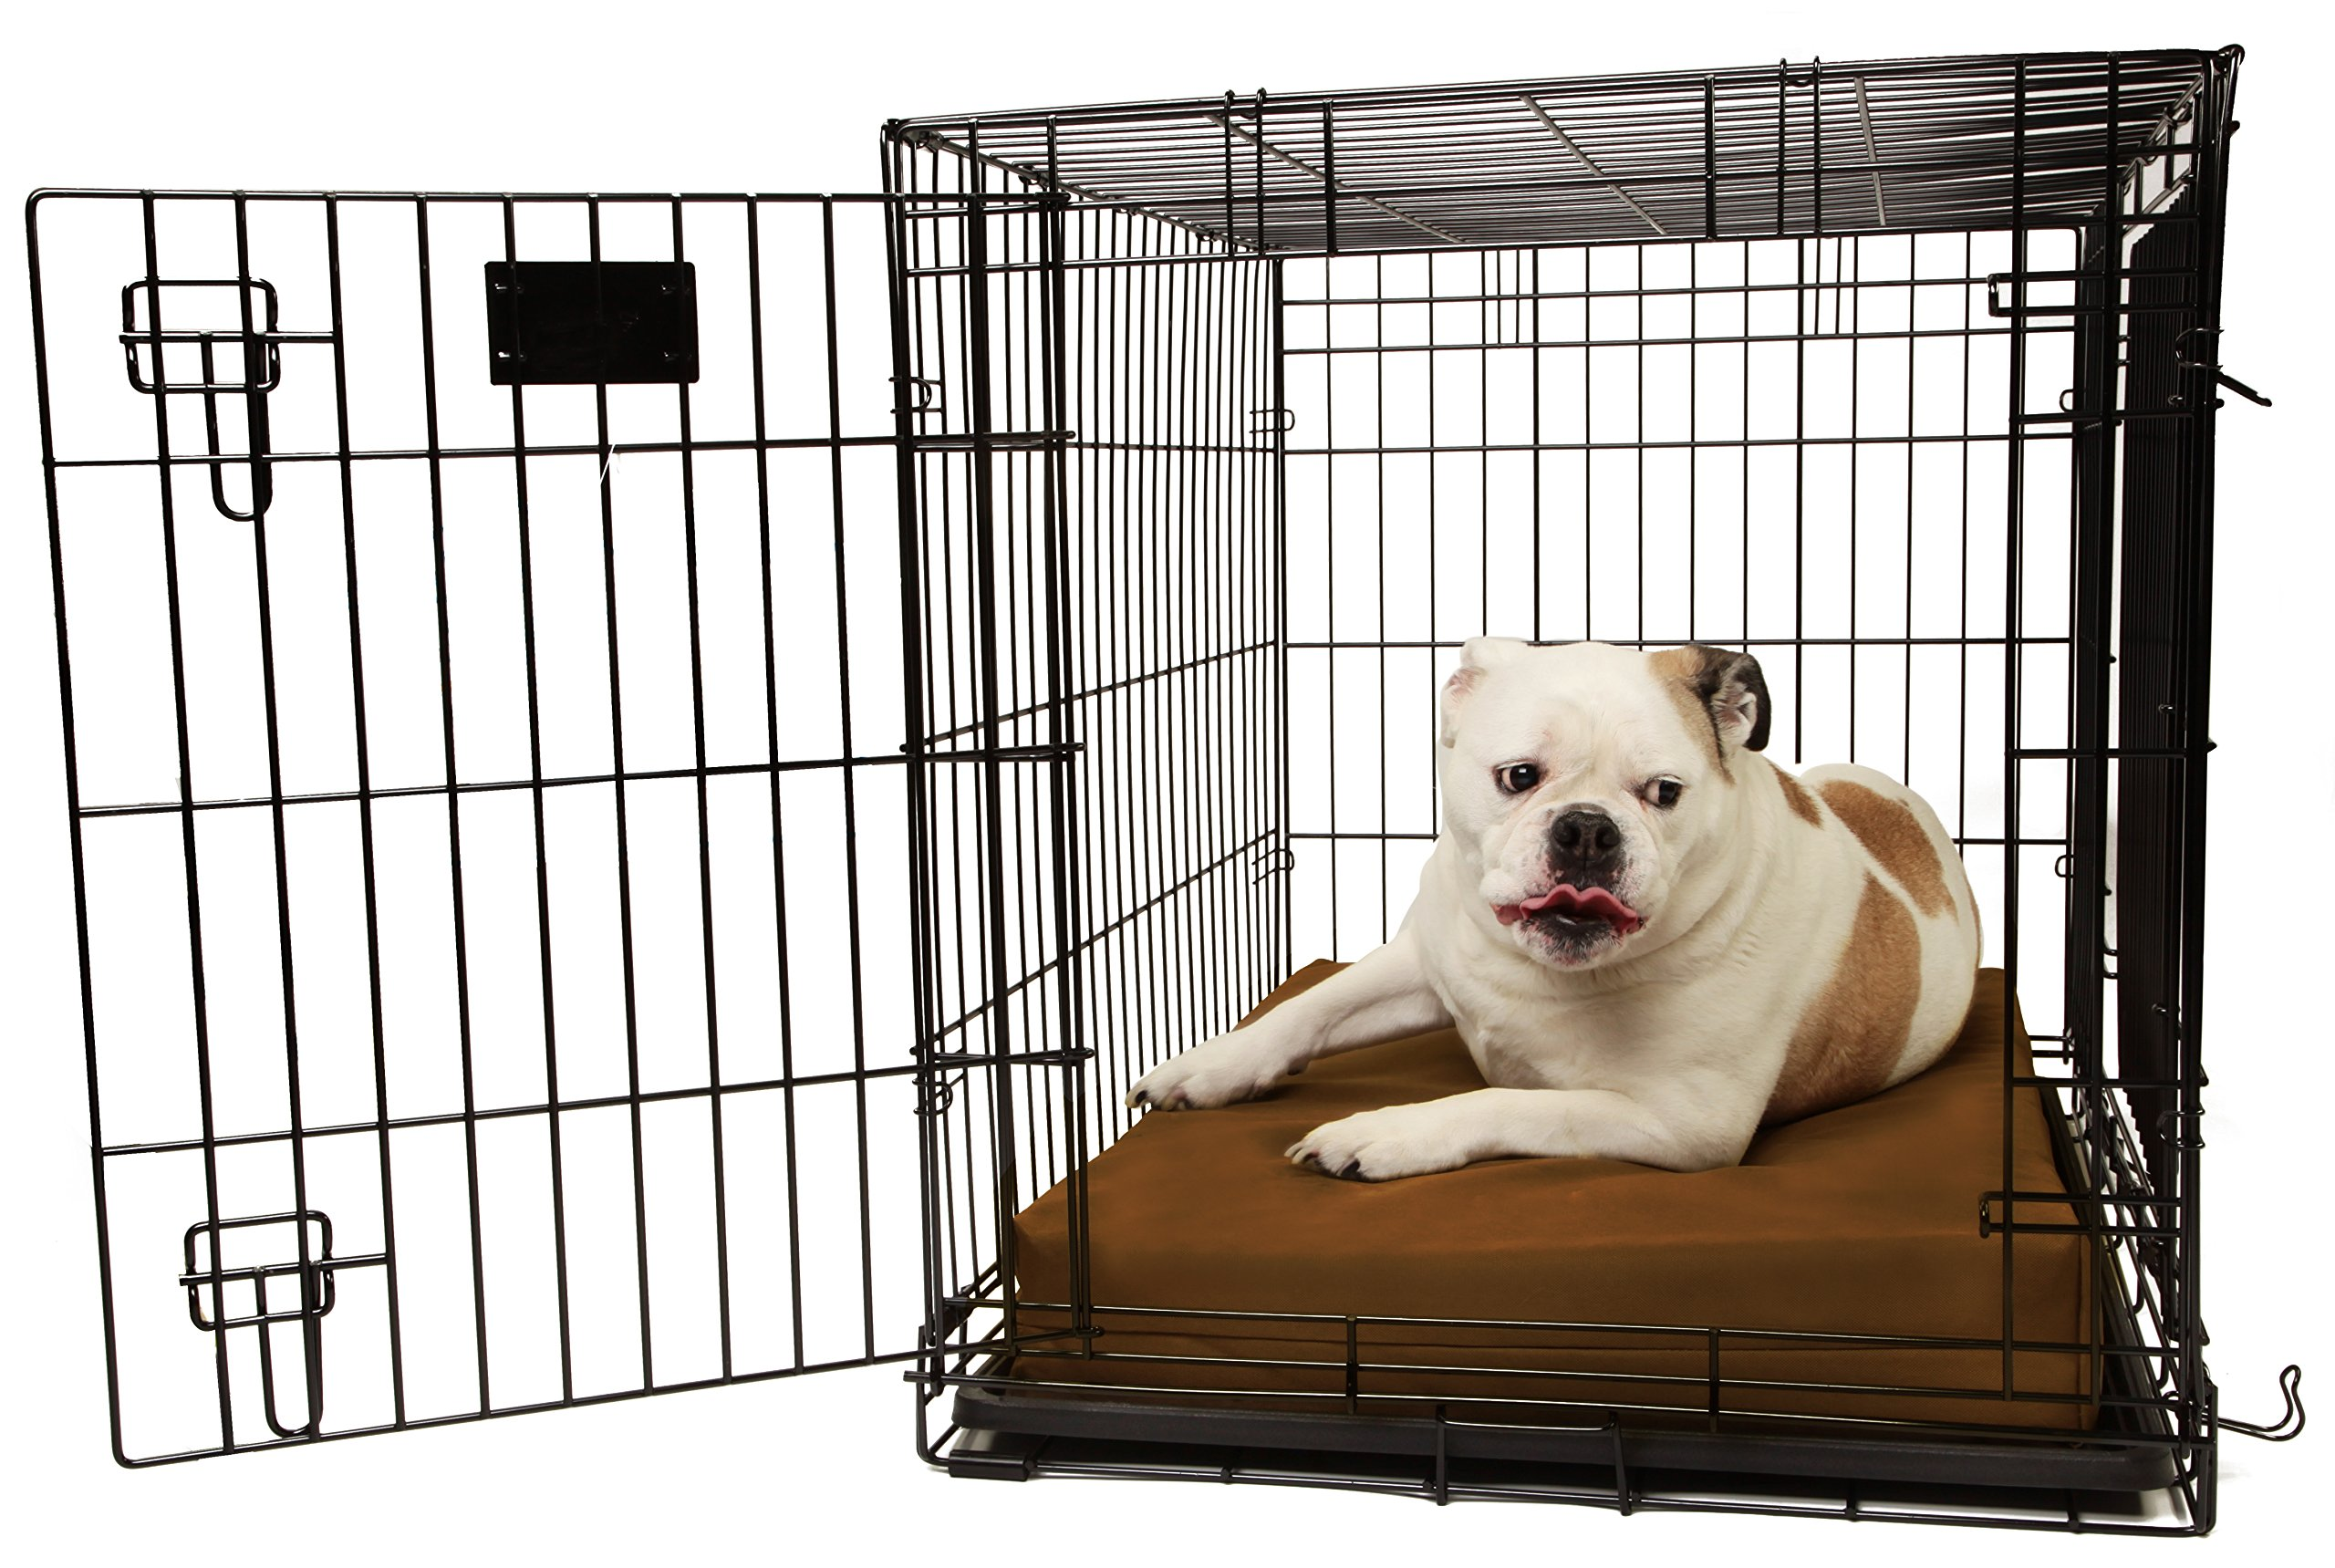 Orthopedic 4'' Dog Crate Pad by Big Barker - 36'' x 24''. Waterproof & Tear Resistant, Washable Cover. Luxury Orthopedic Support Foam inside. Made in USA. Sized to perfectly fit inside a 36'' x 24'' crate.